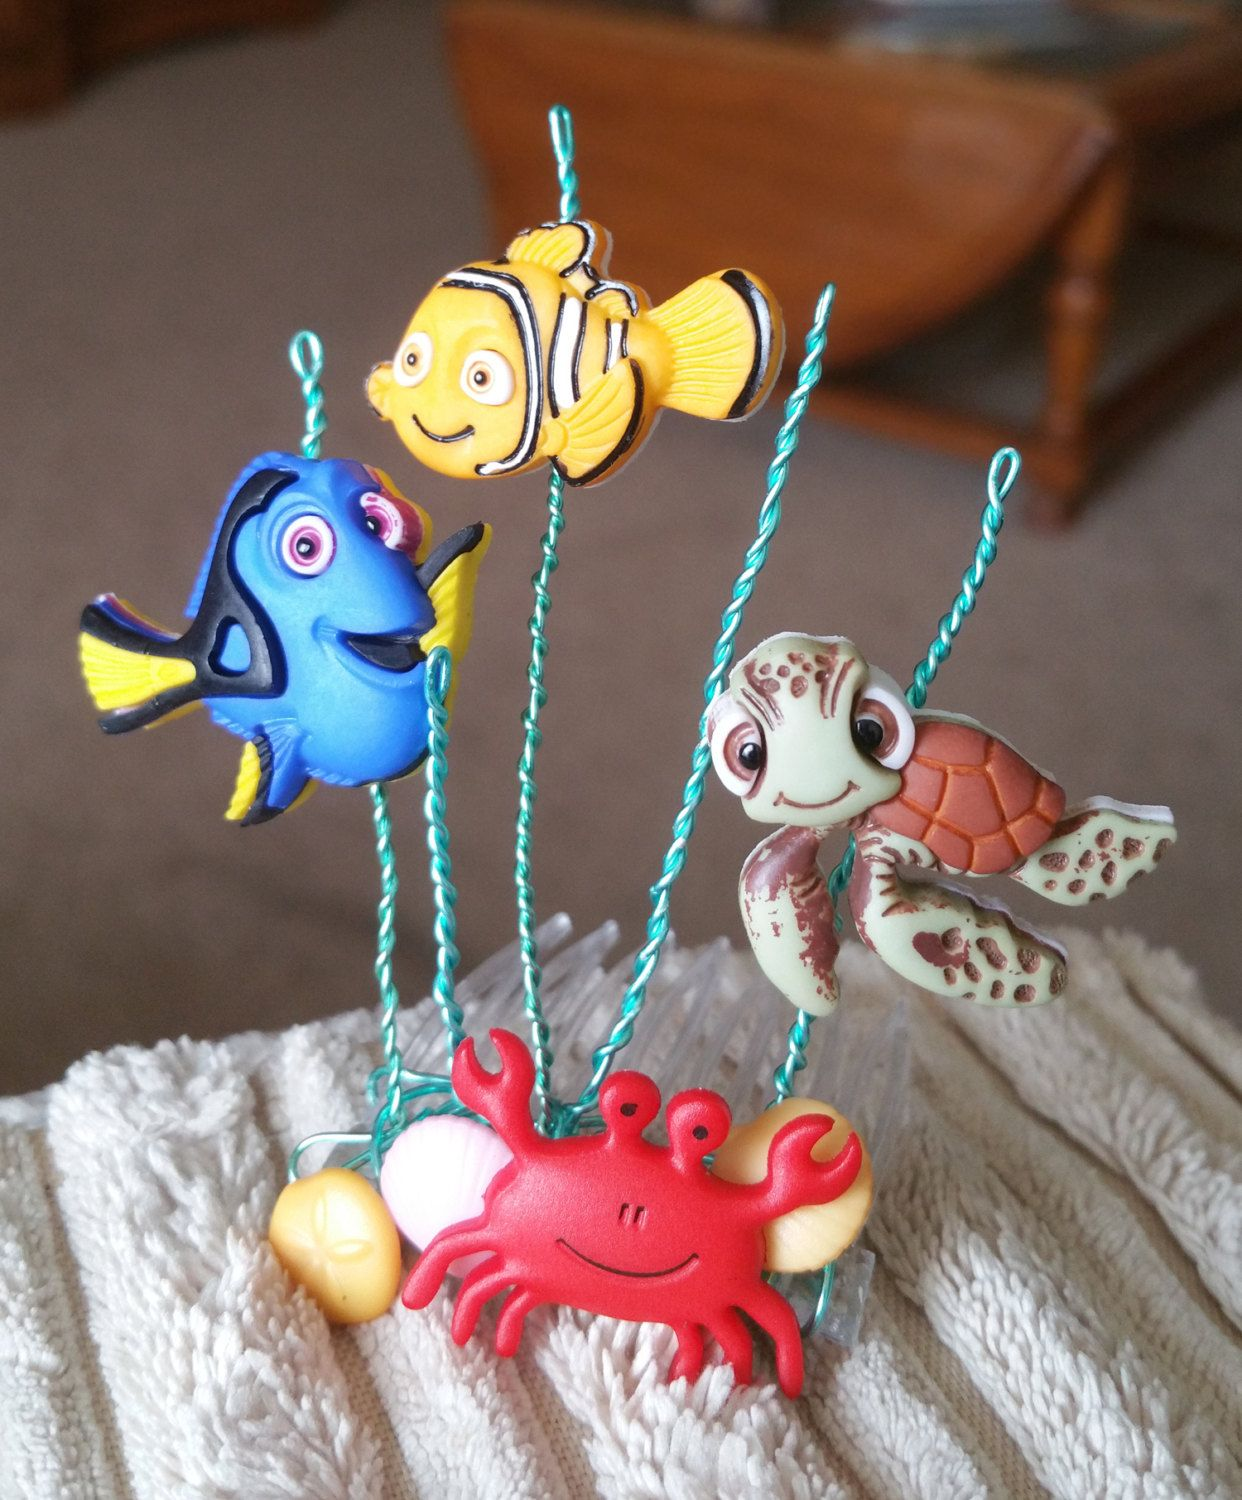 Finding Nemo Tiara/Decorative Comb for you or your precious pet by DoggieStyleByB on Etsy